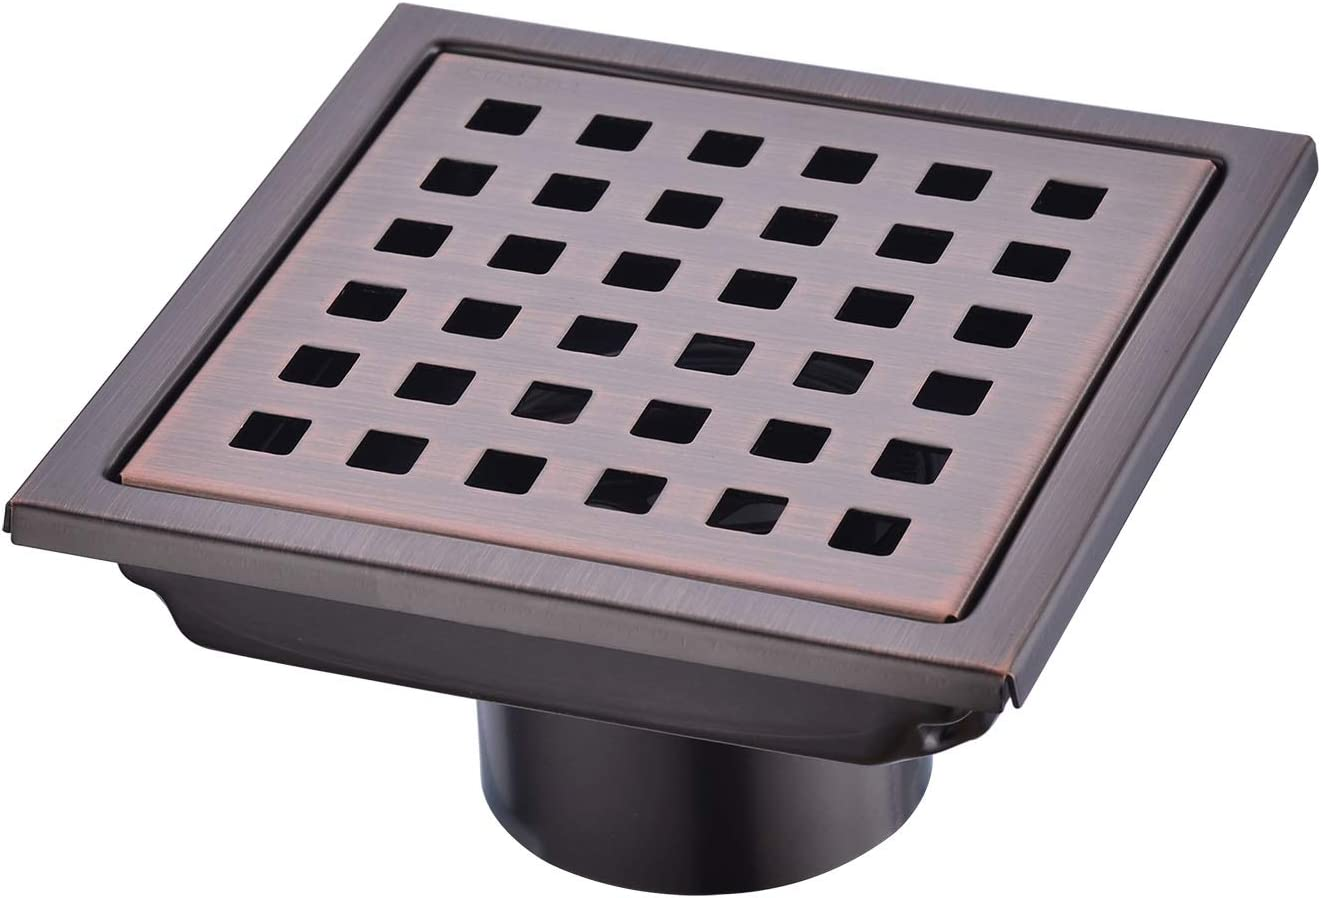 Square Shower Drain 4 inch Max 65% OFF Nicmondo 304 New sales Point Steel C Stainless